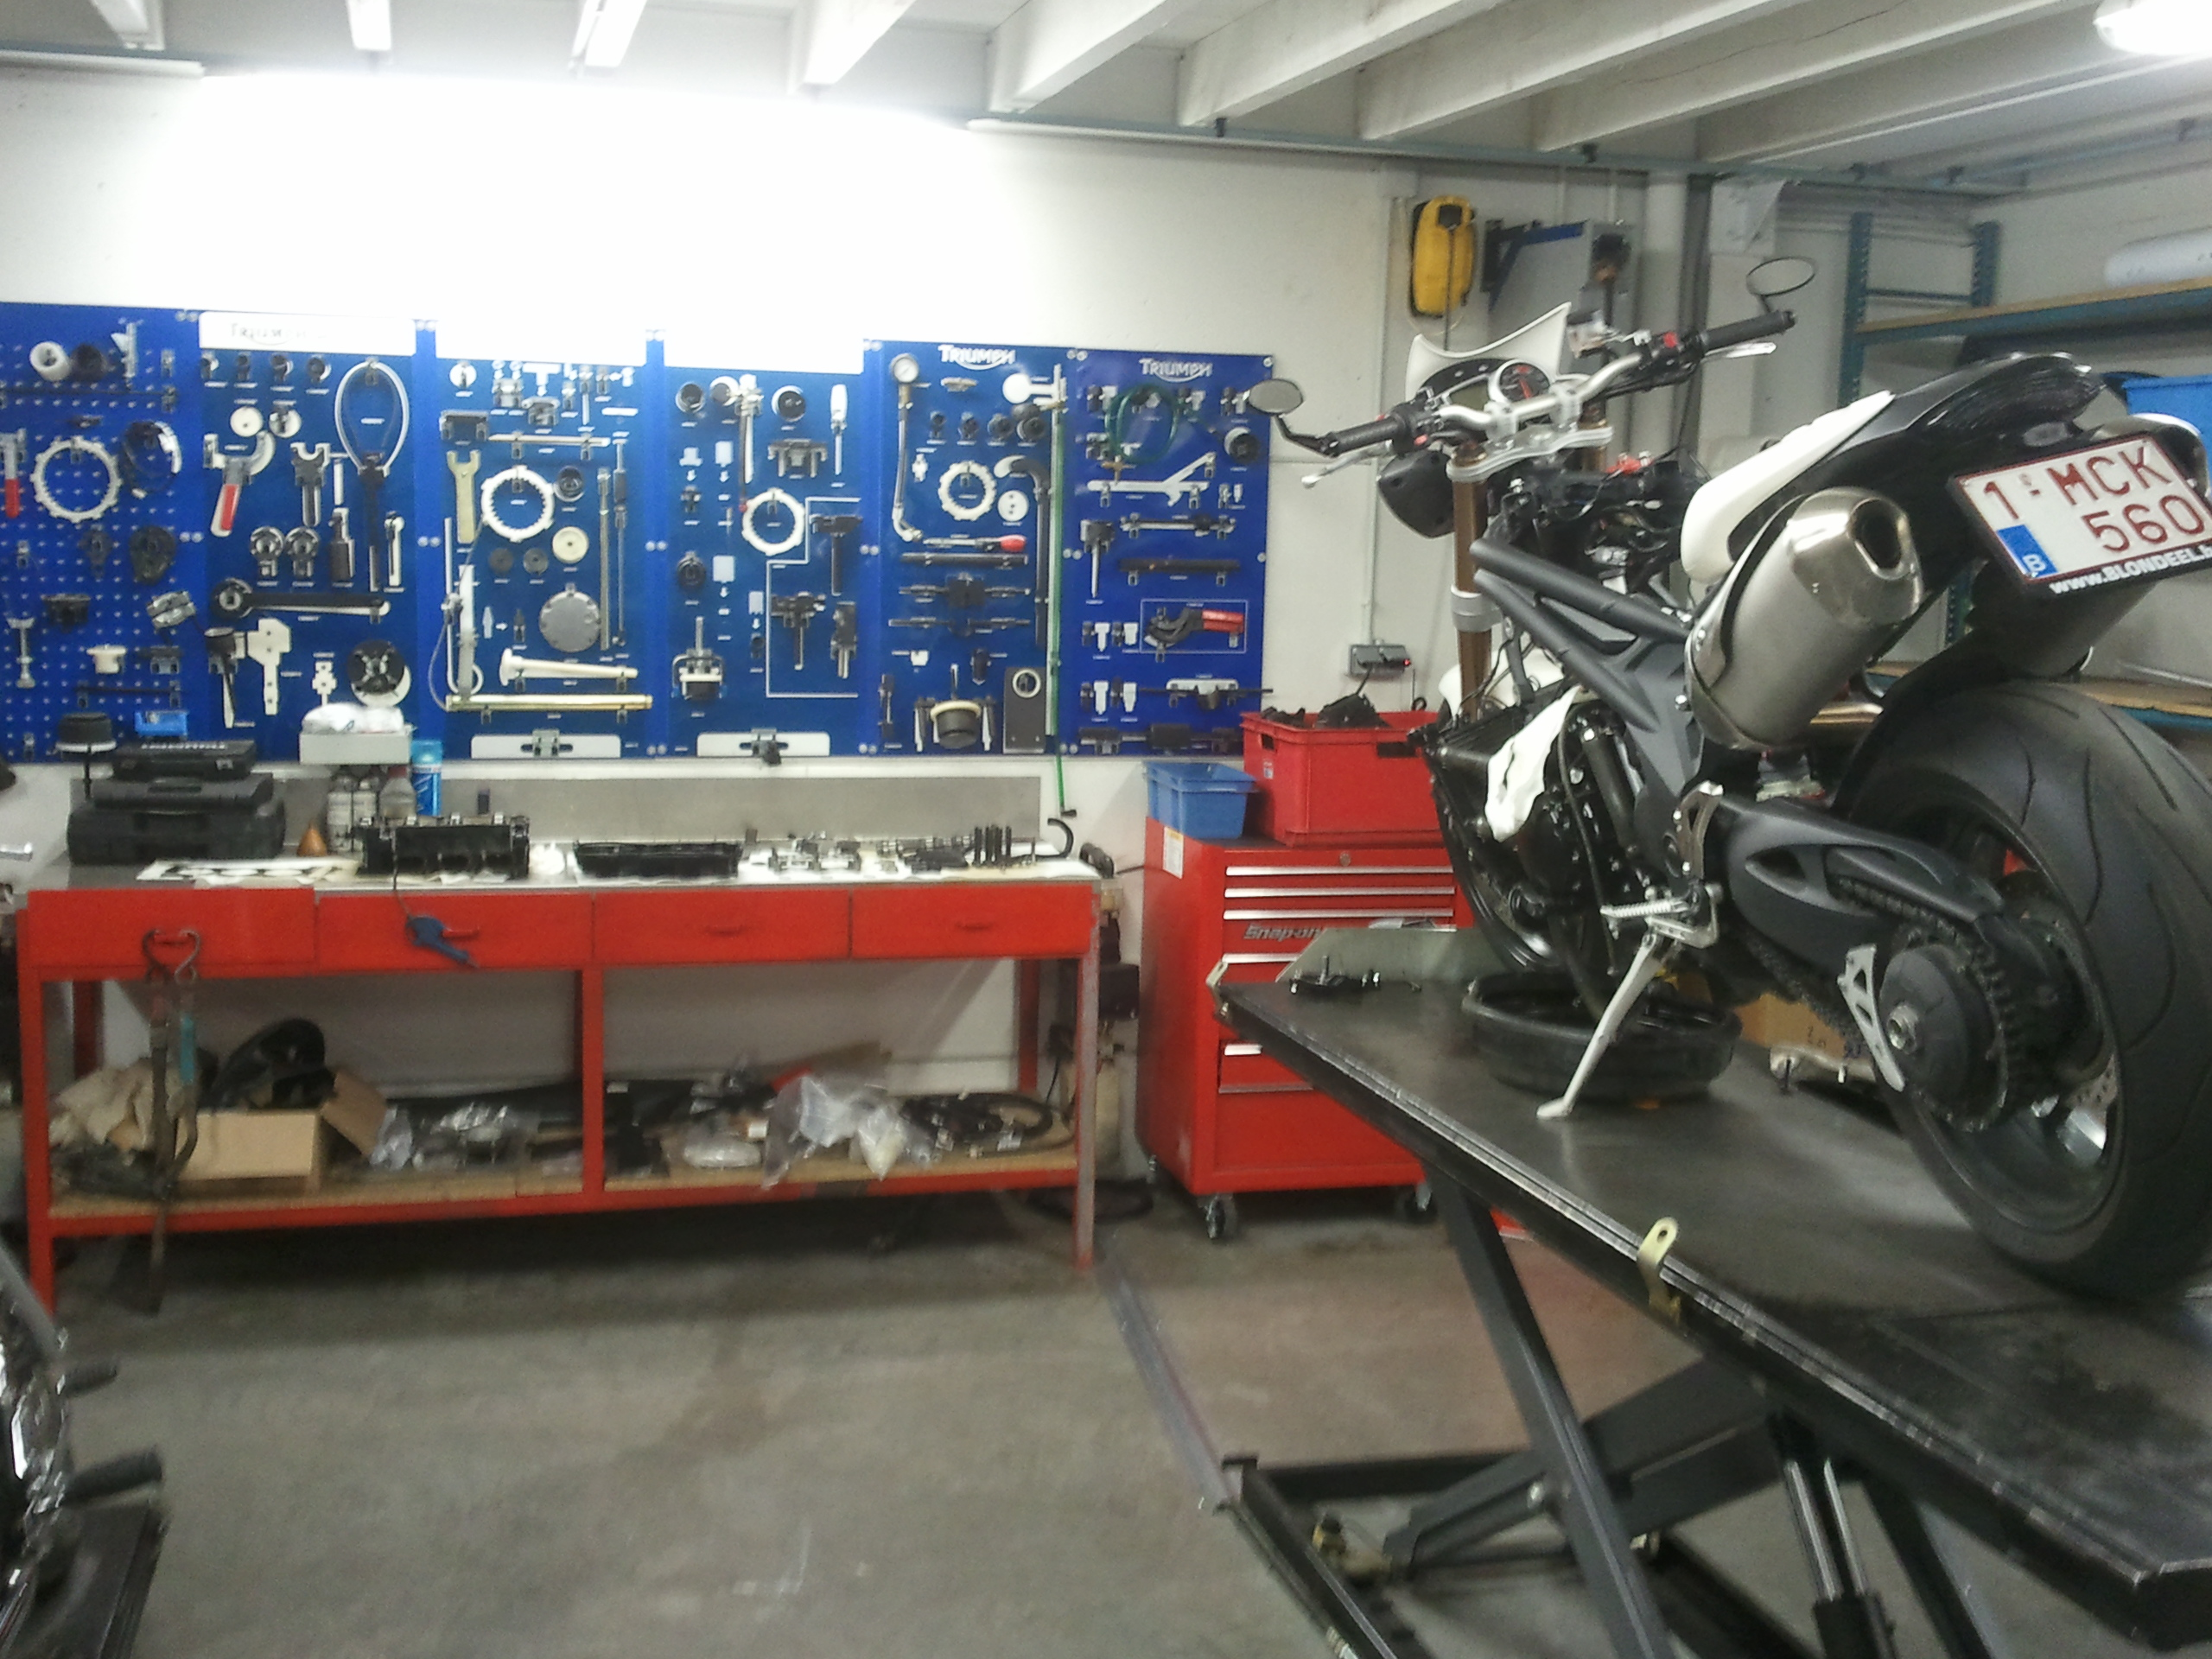 File Werkplaats Motoparts jpg   Wikimedia Commons